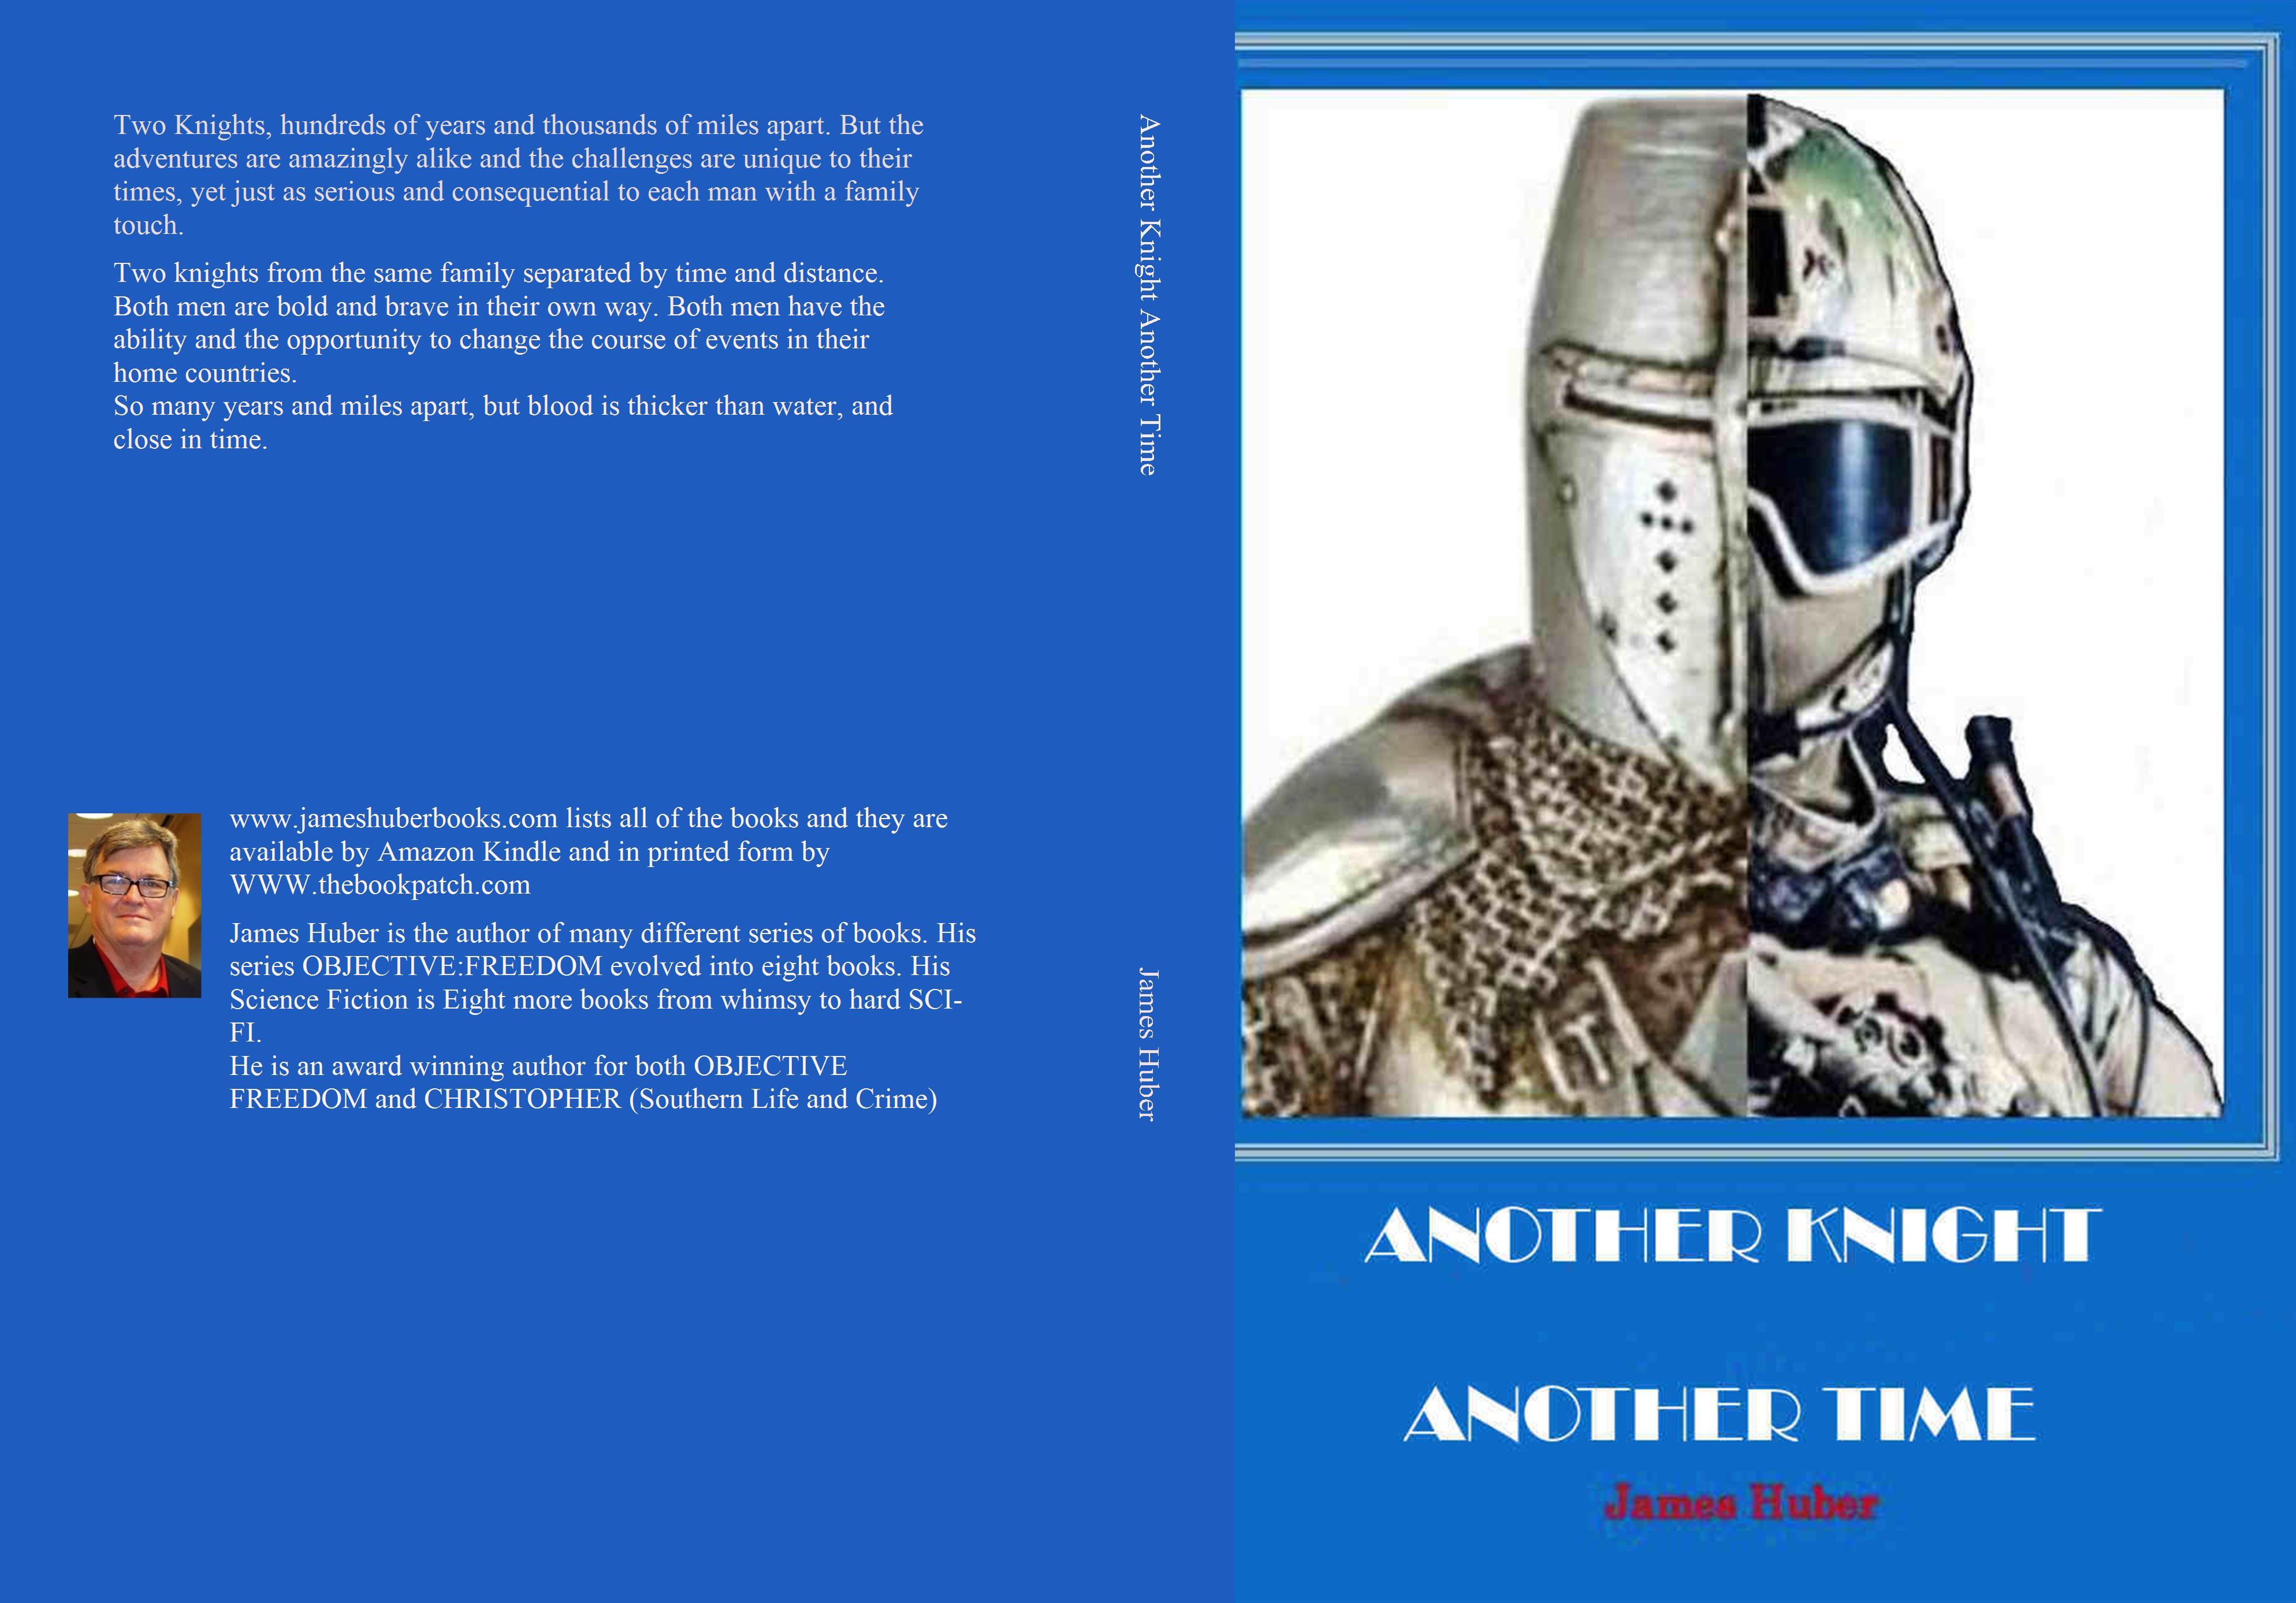 Another Knight Another Knight cover image